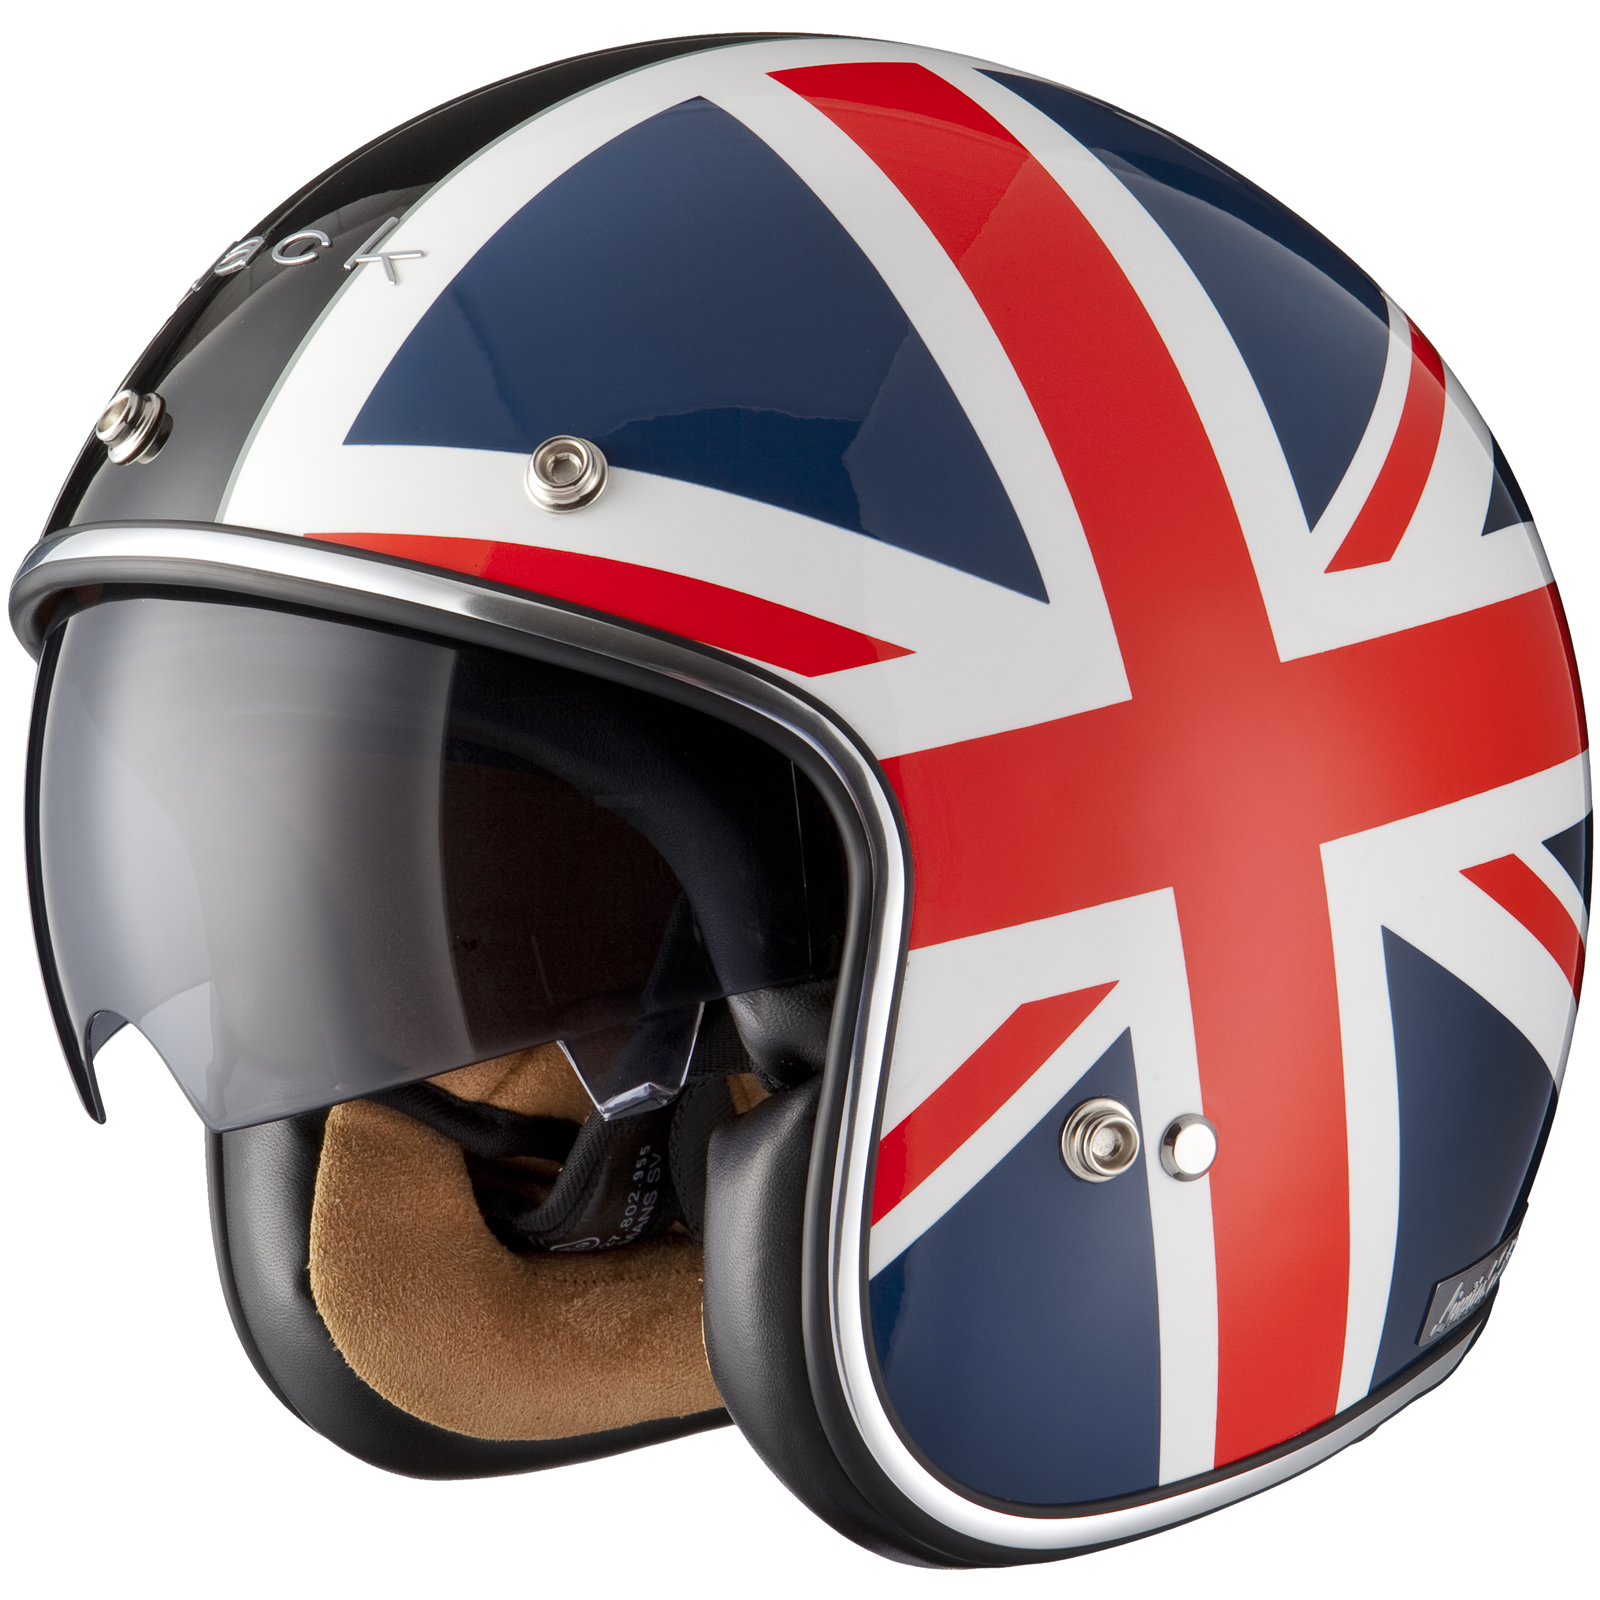 Casque moto union jack